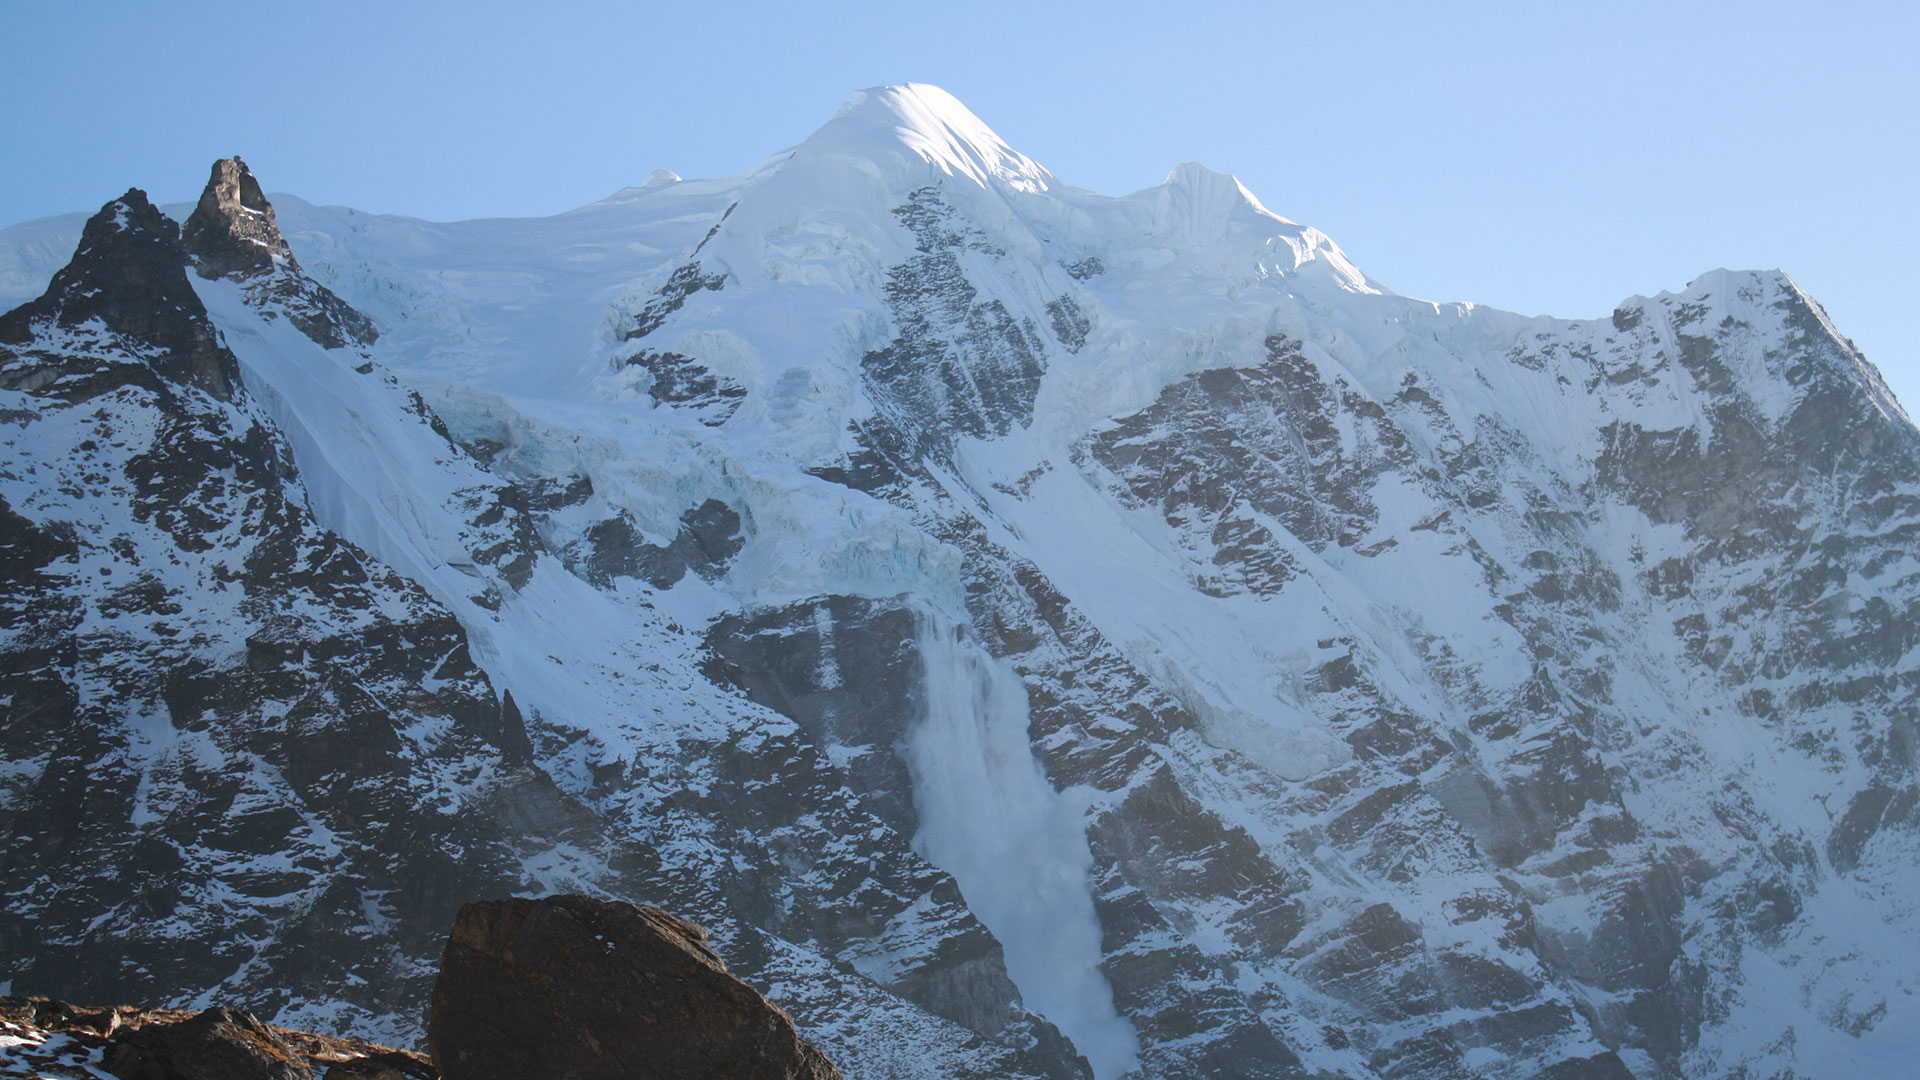 Mera Peak Climbing Difficulty